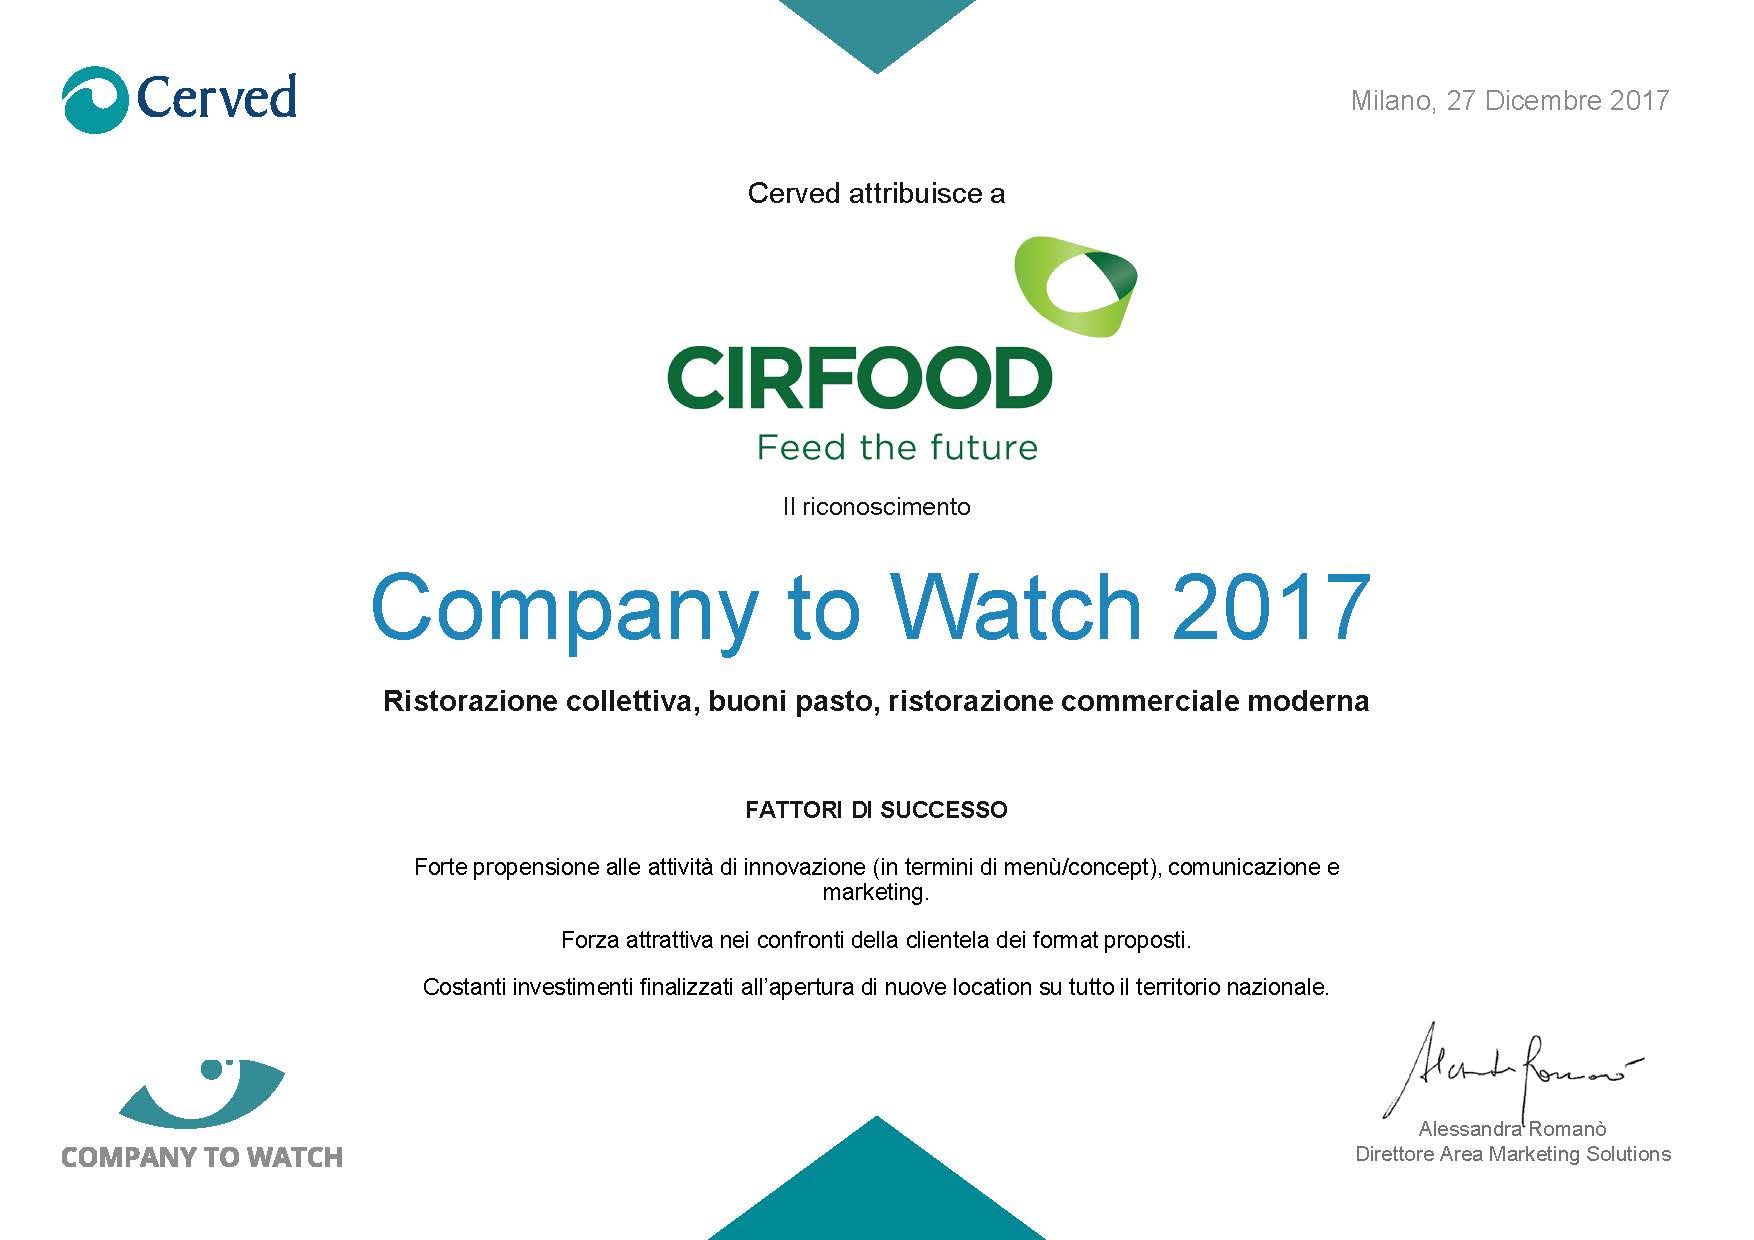 company to watch 2017 cerved cirfood